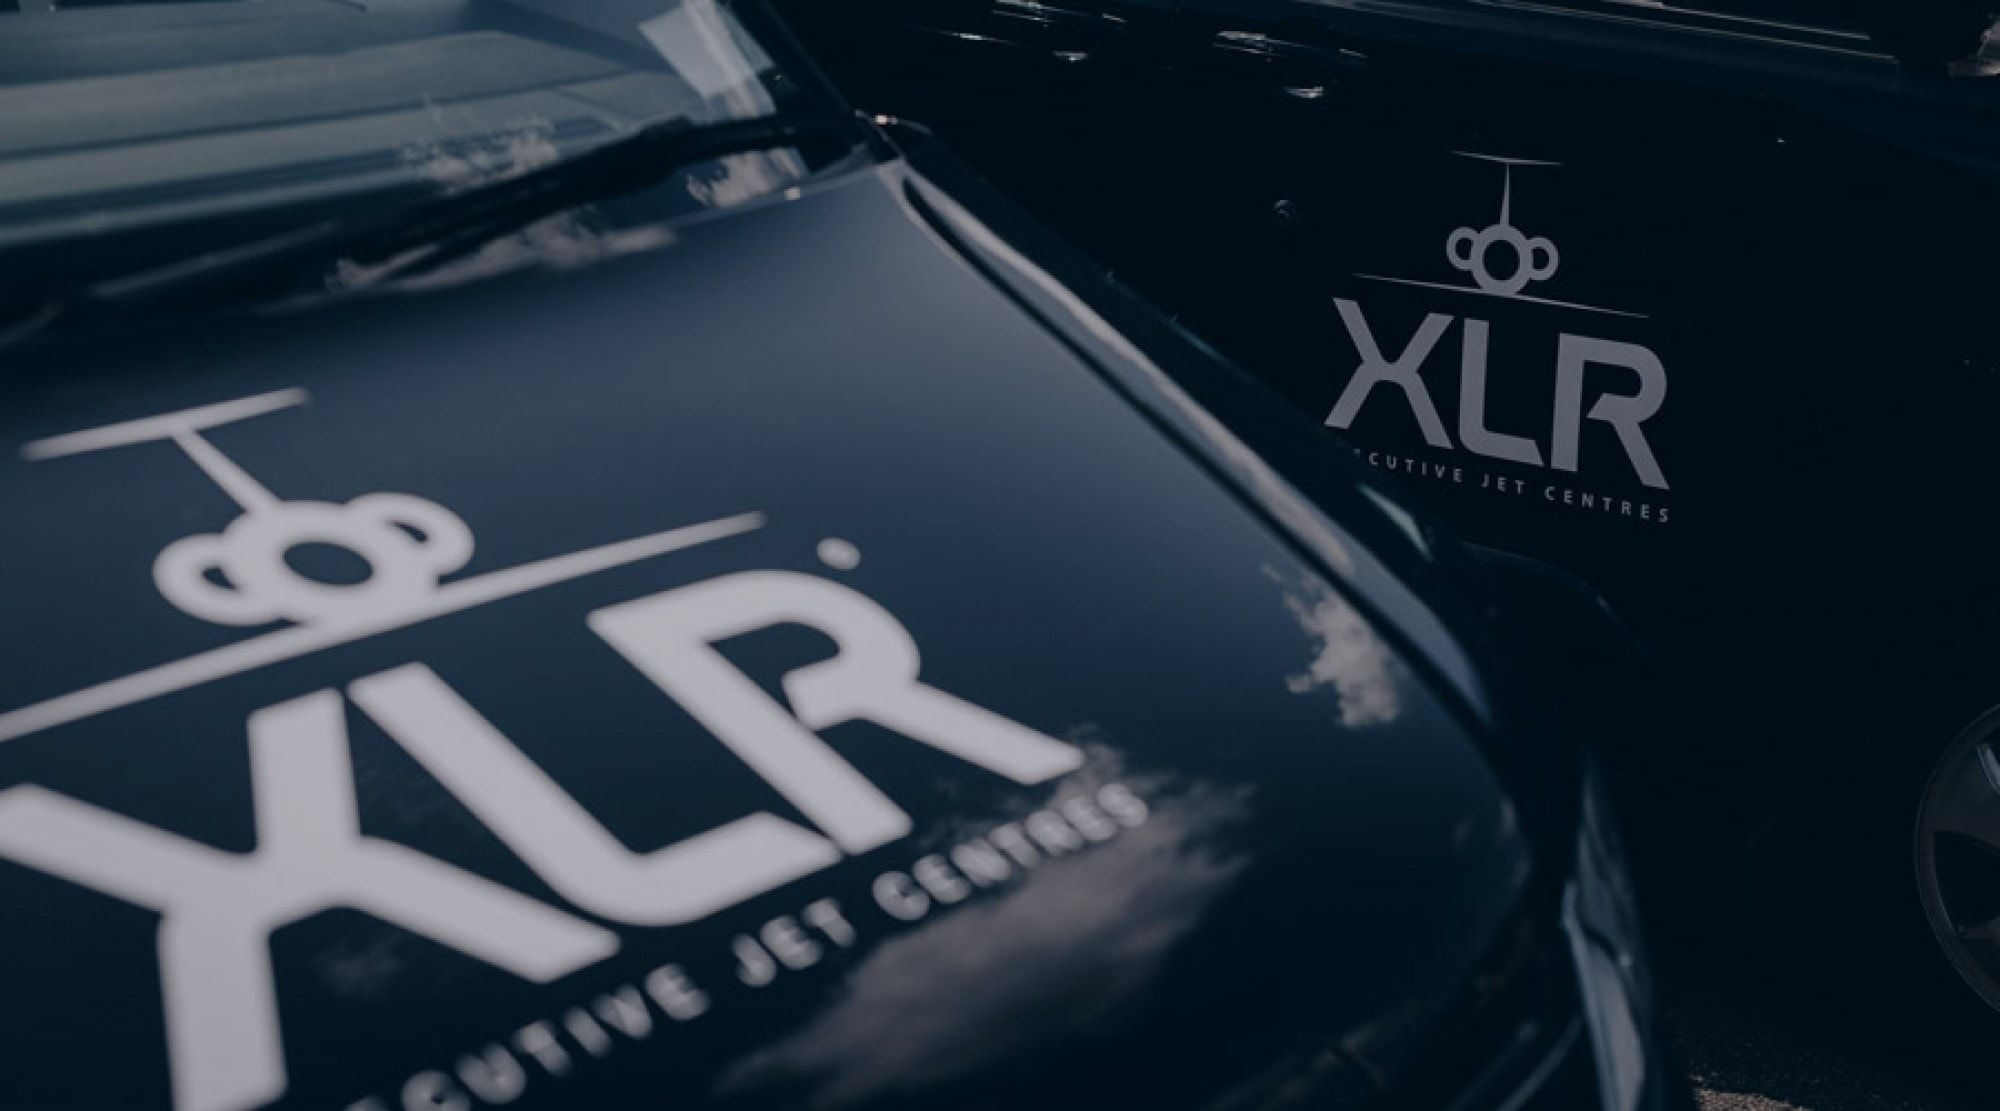 XLR expansion in Bournemouth